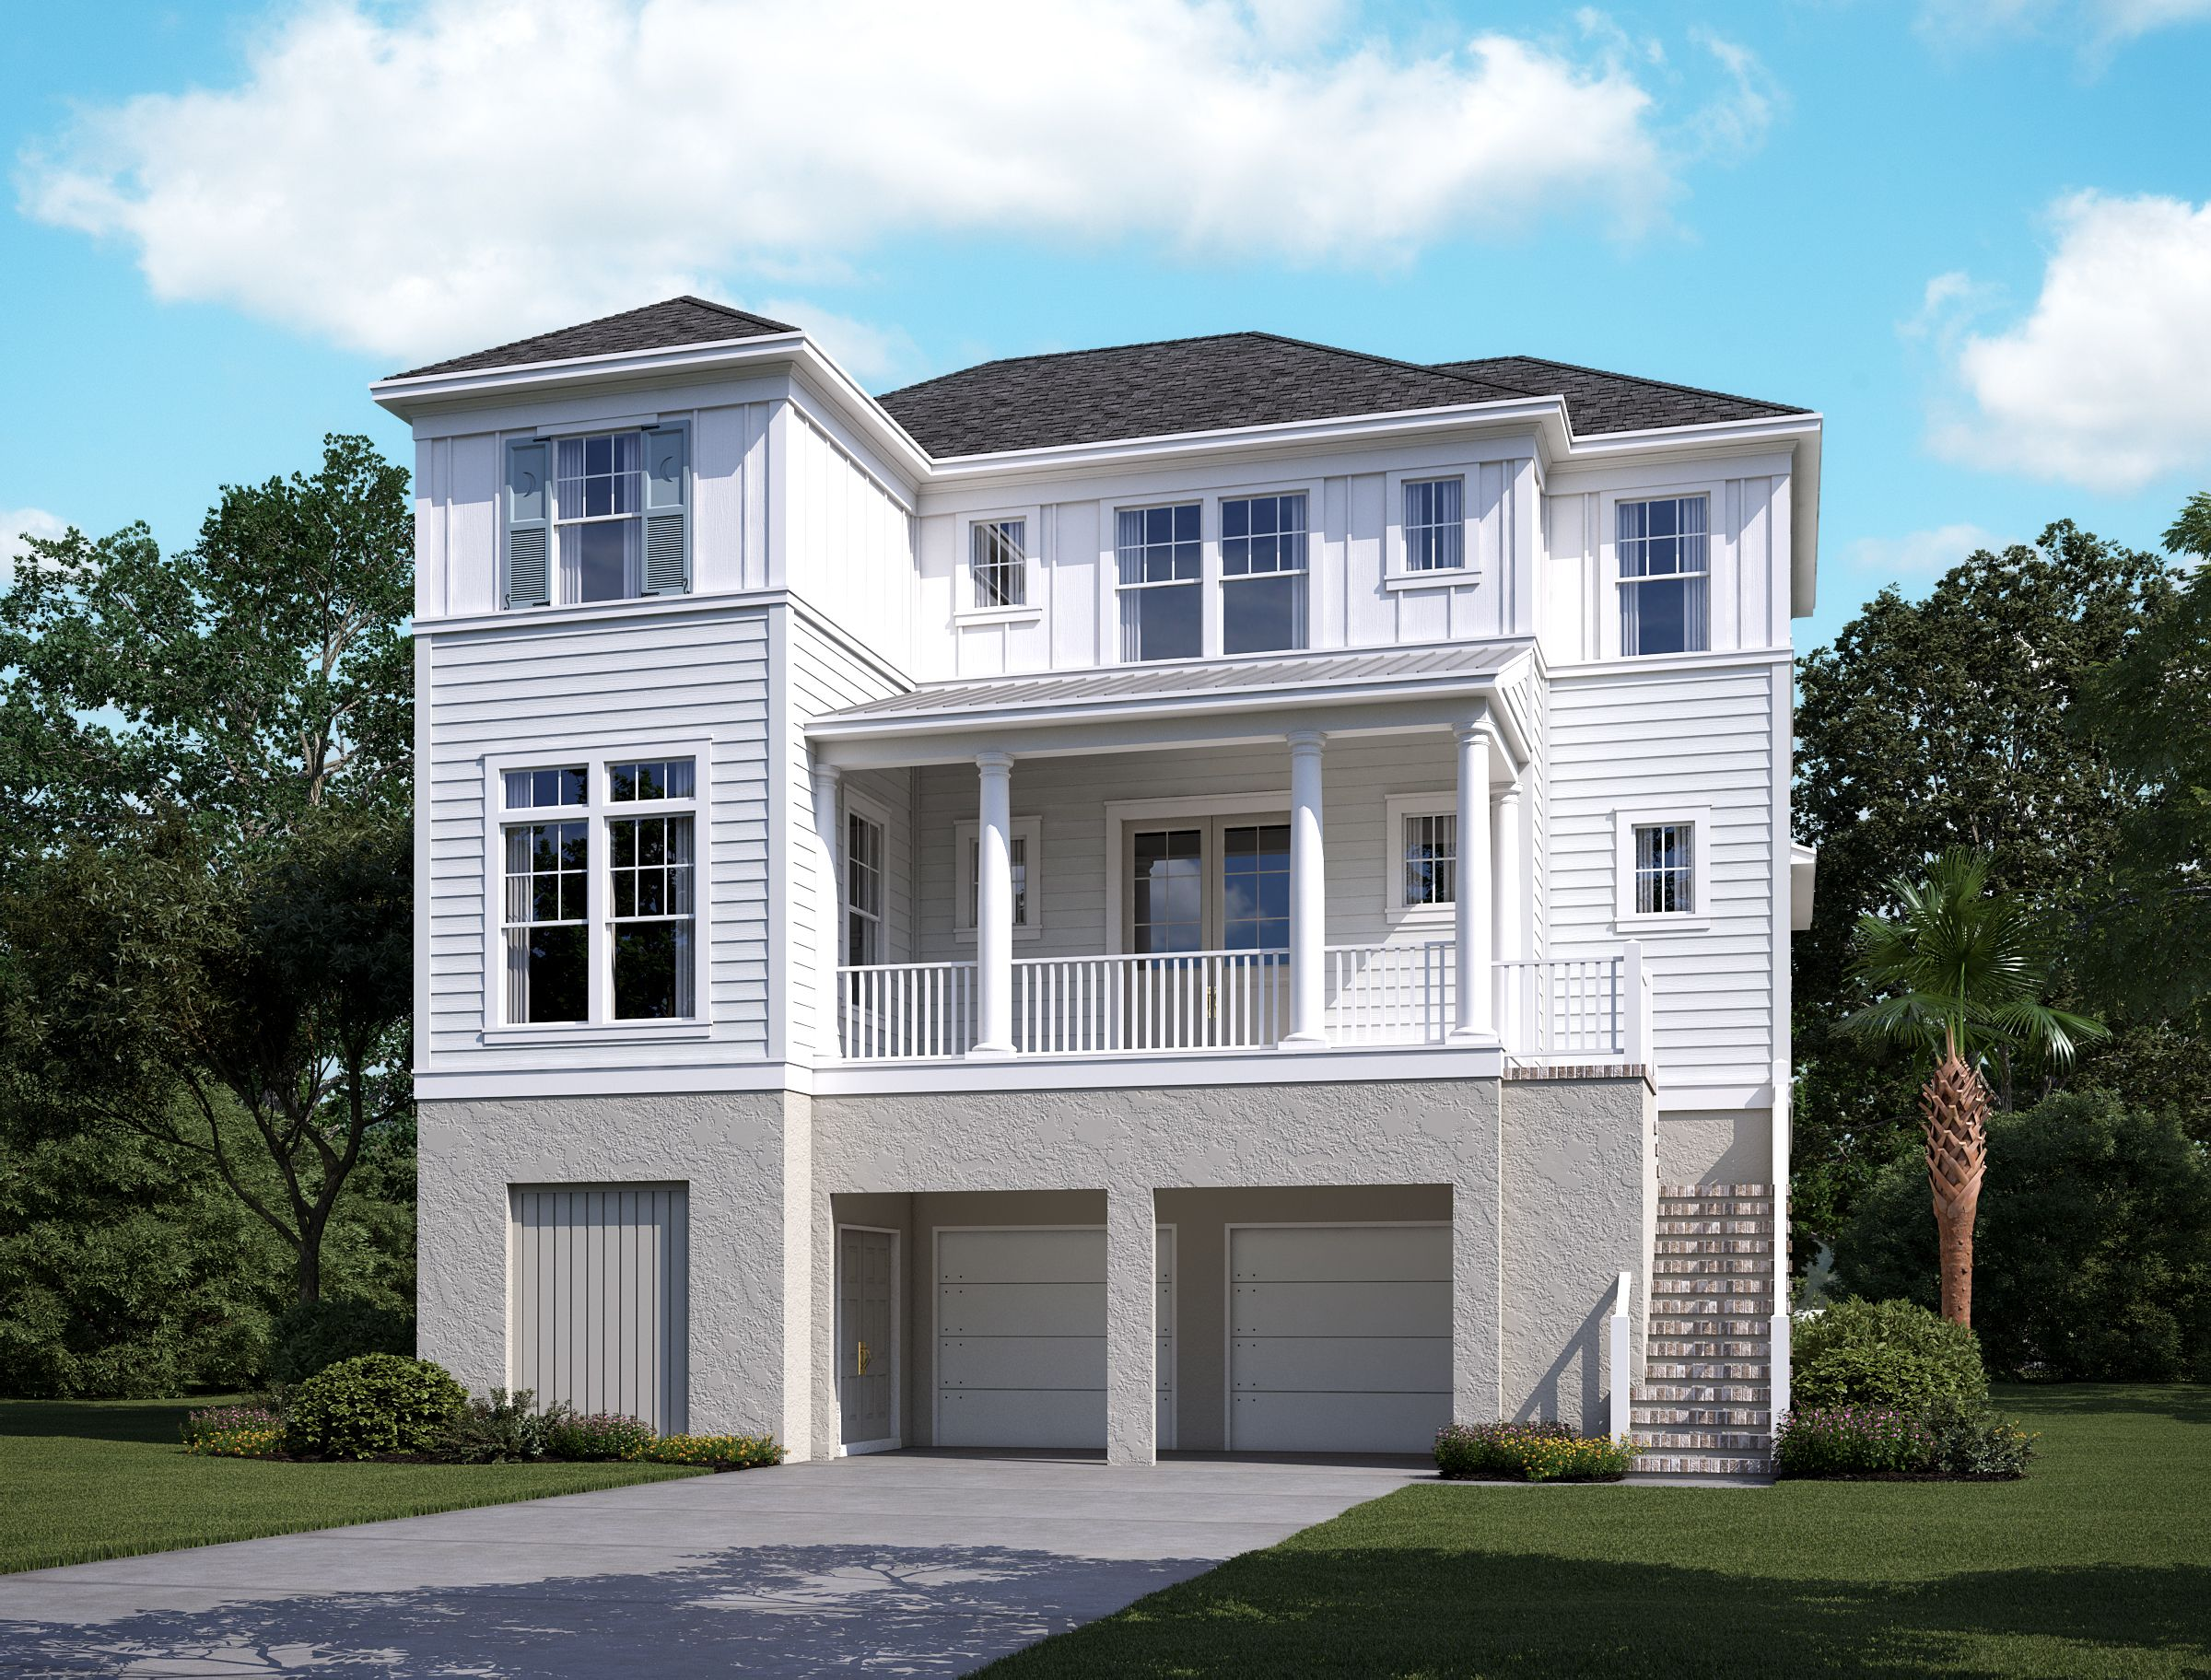 Single Family for Sale at Stratton By The Sound - Shem 1439 Stratton Place Mount Pleasant, South Carolina 29466 United States